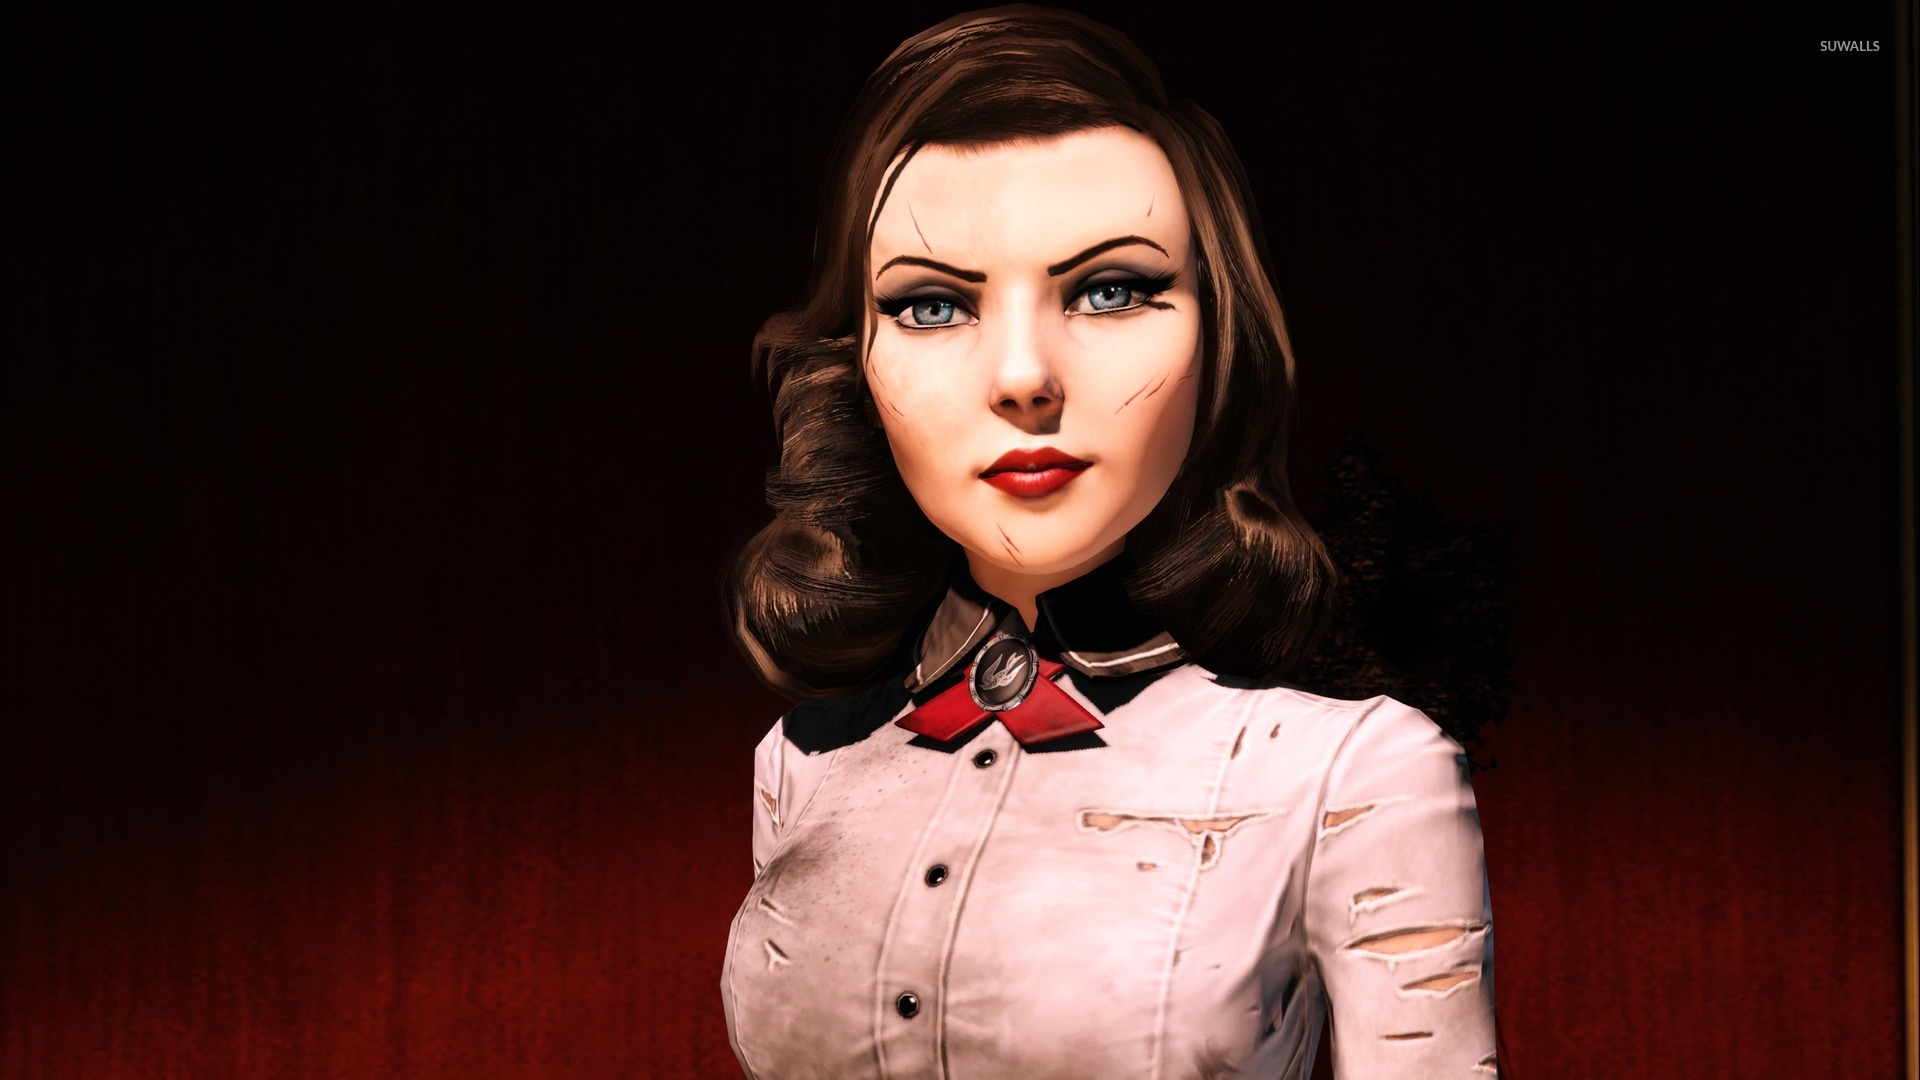 elizabeth bioshock infinite wallpapers - photo #35